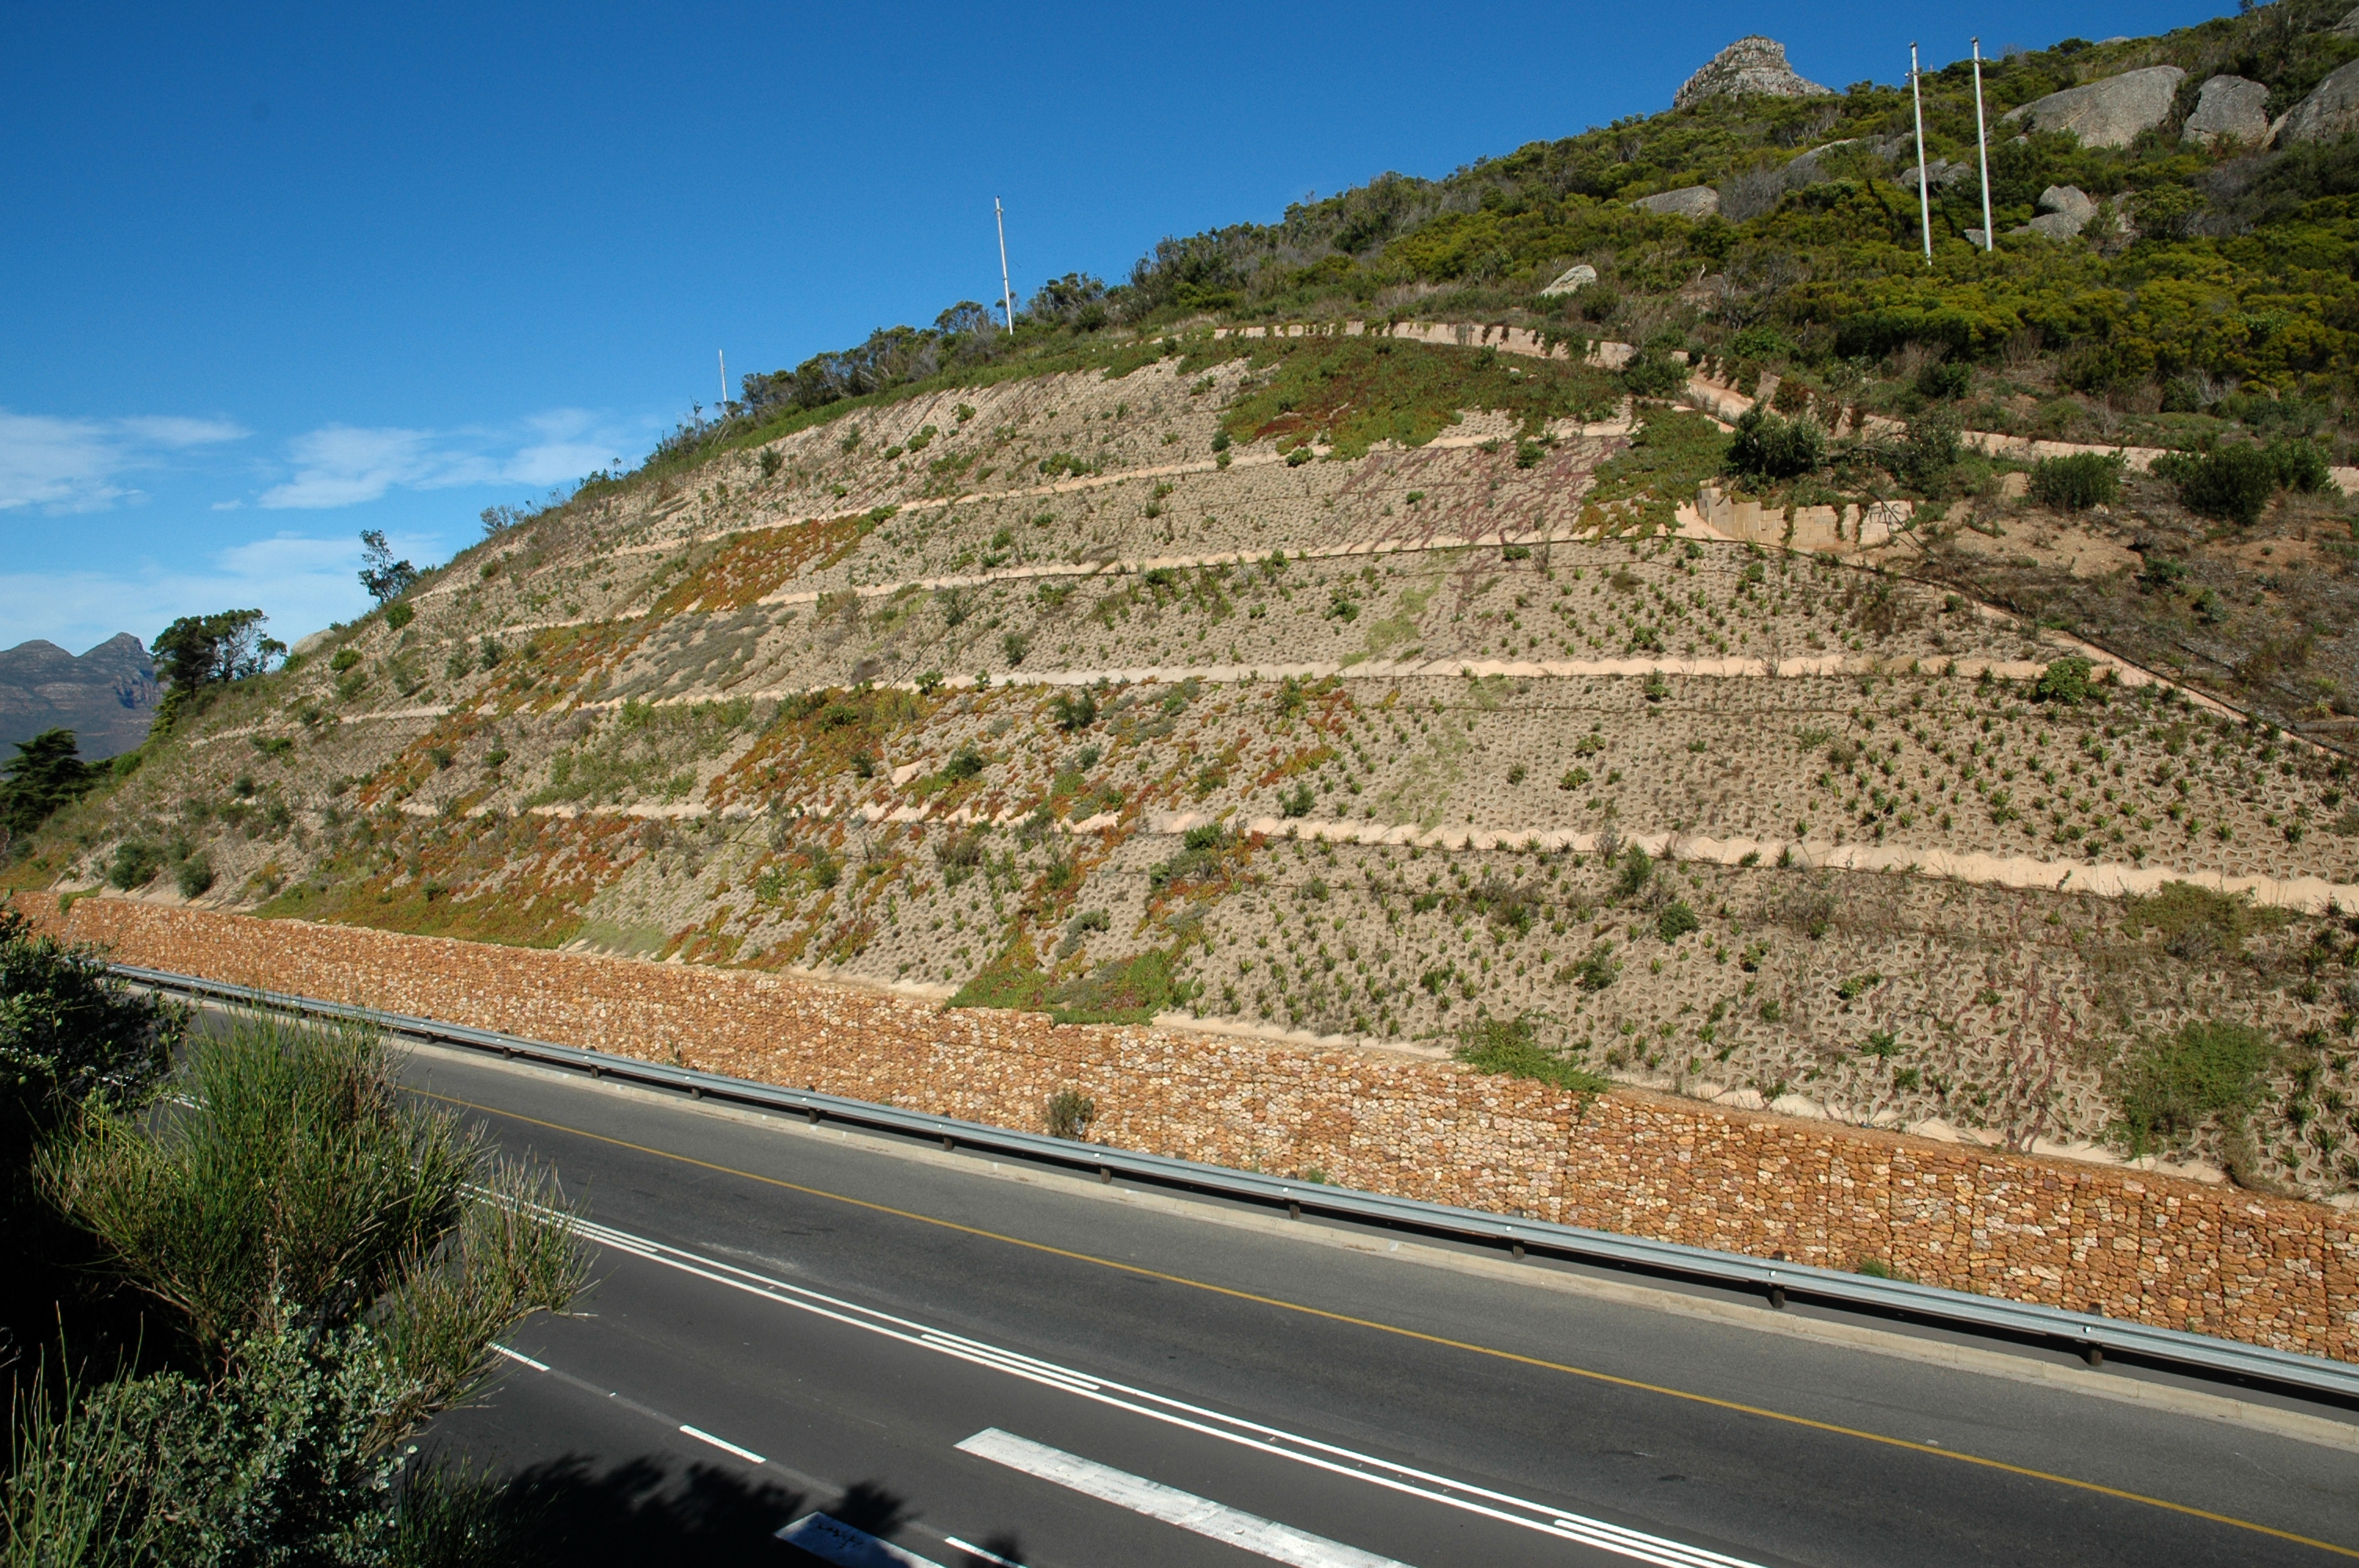 Slope rehabilitation with concrete blocks